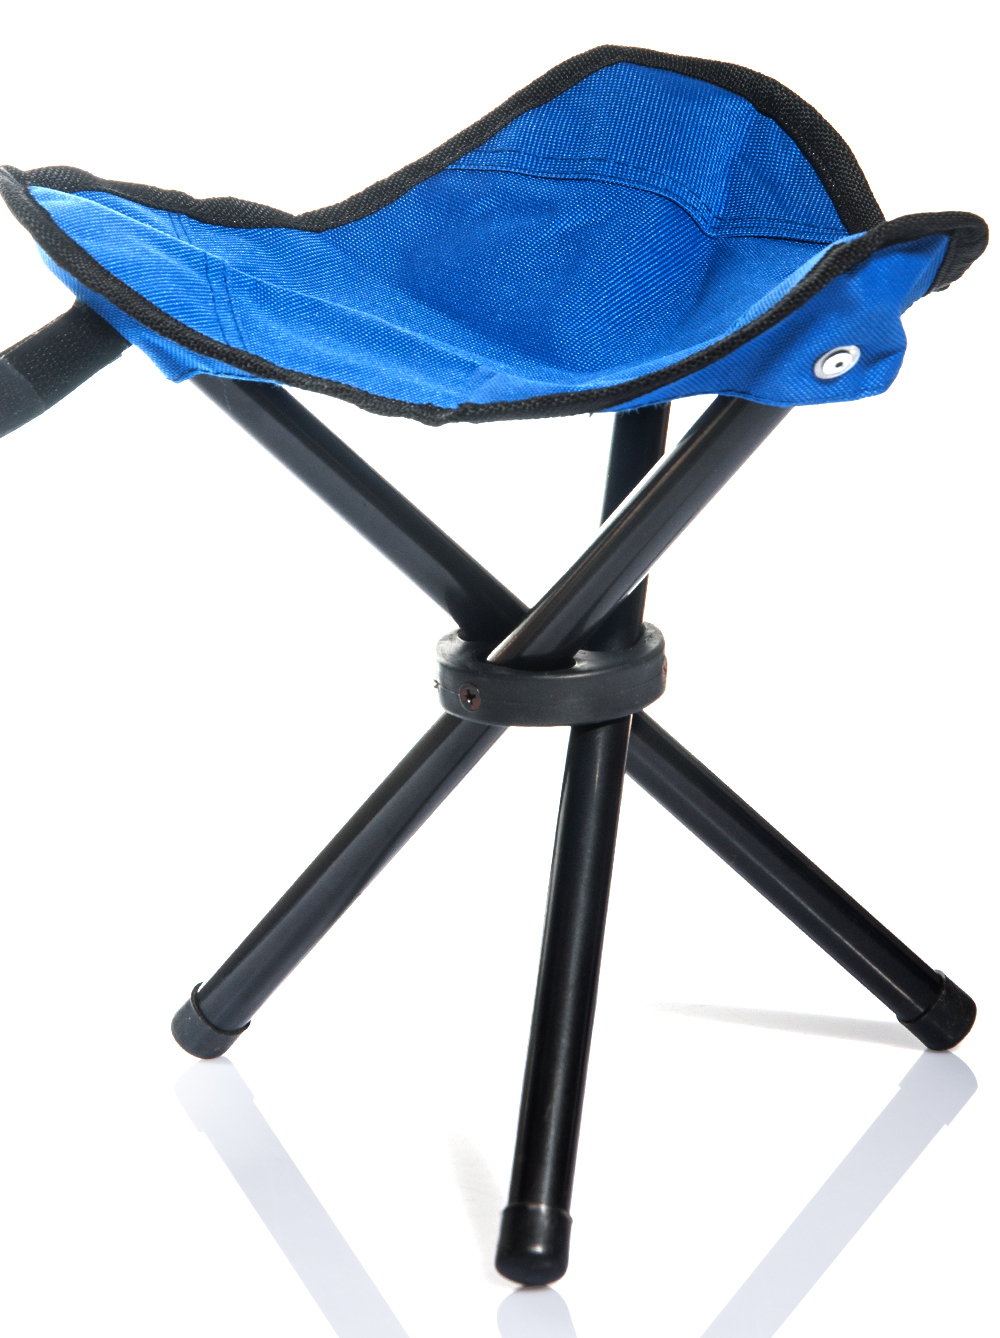 Lightweight camping chairs - Get Quotations Outdoor Small Lightweight Portable Folding Chair For Fishing Hiking Camping Foldable Tripod Camp Chair